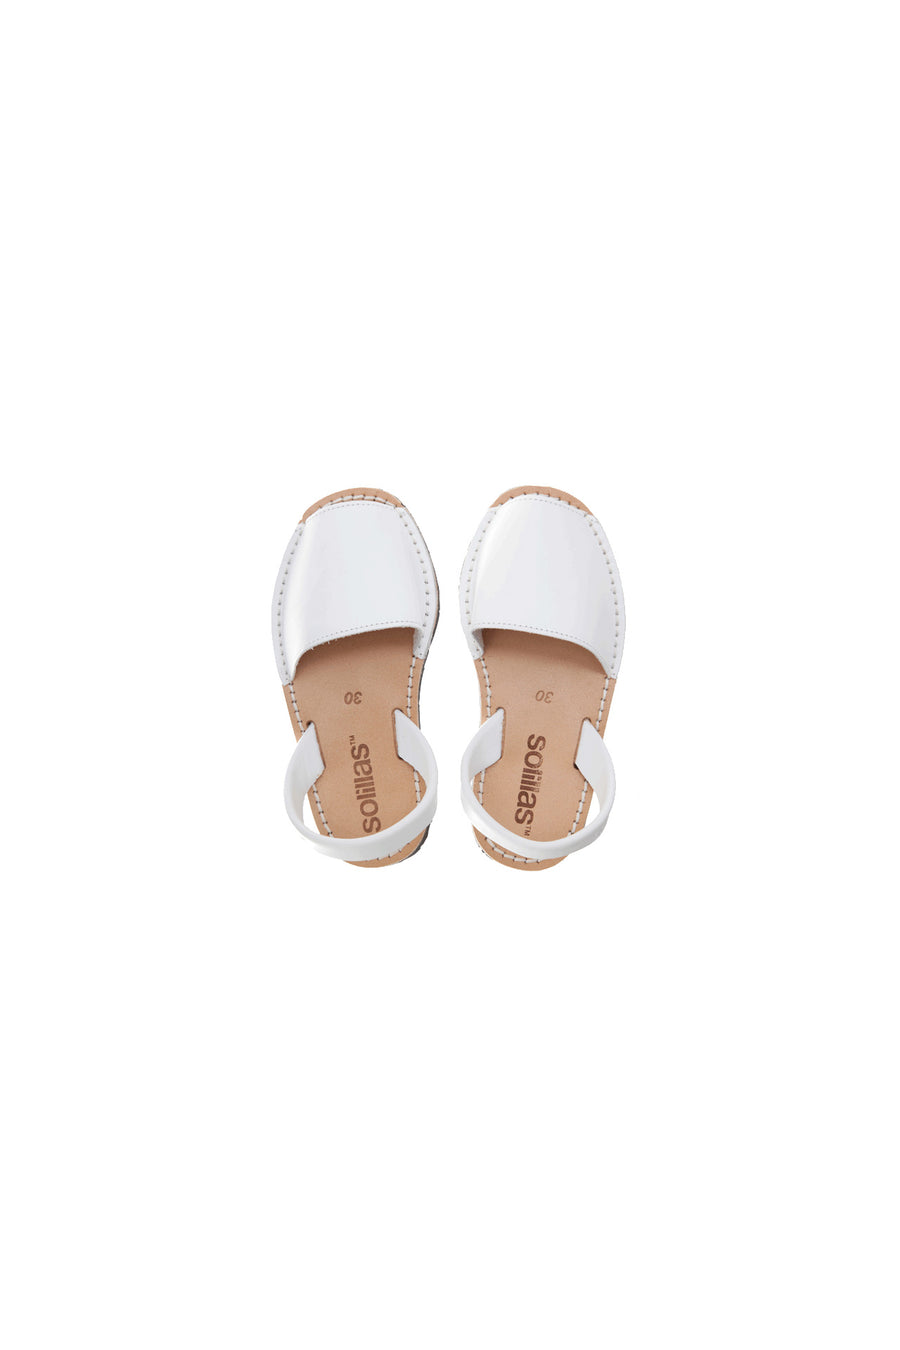 Blanco - Leather Menorcan Sandals